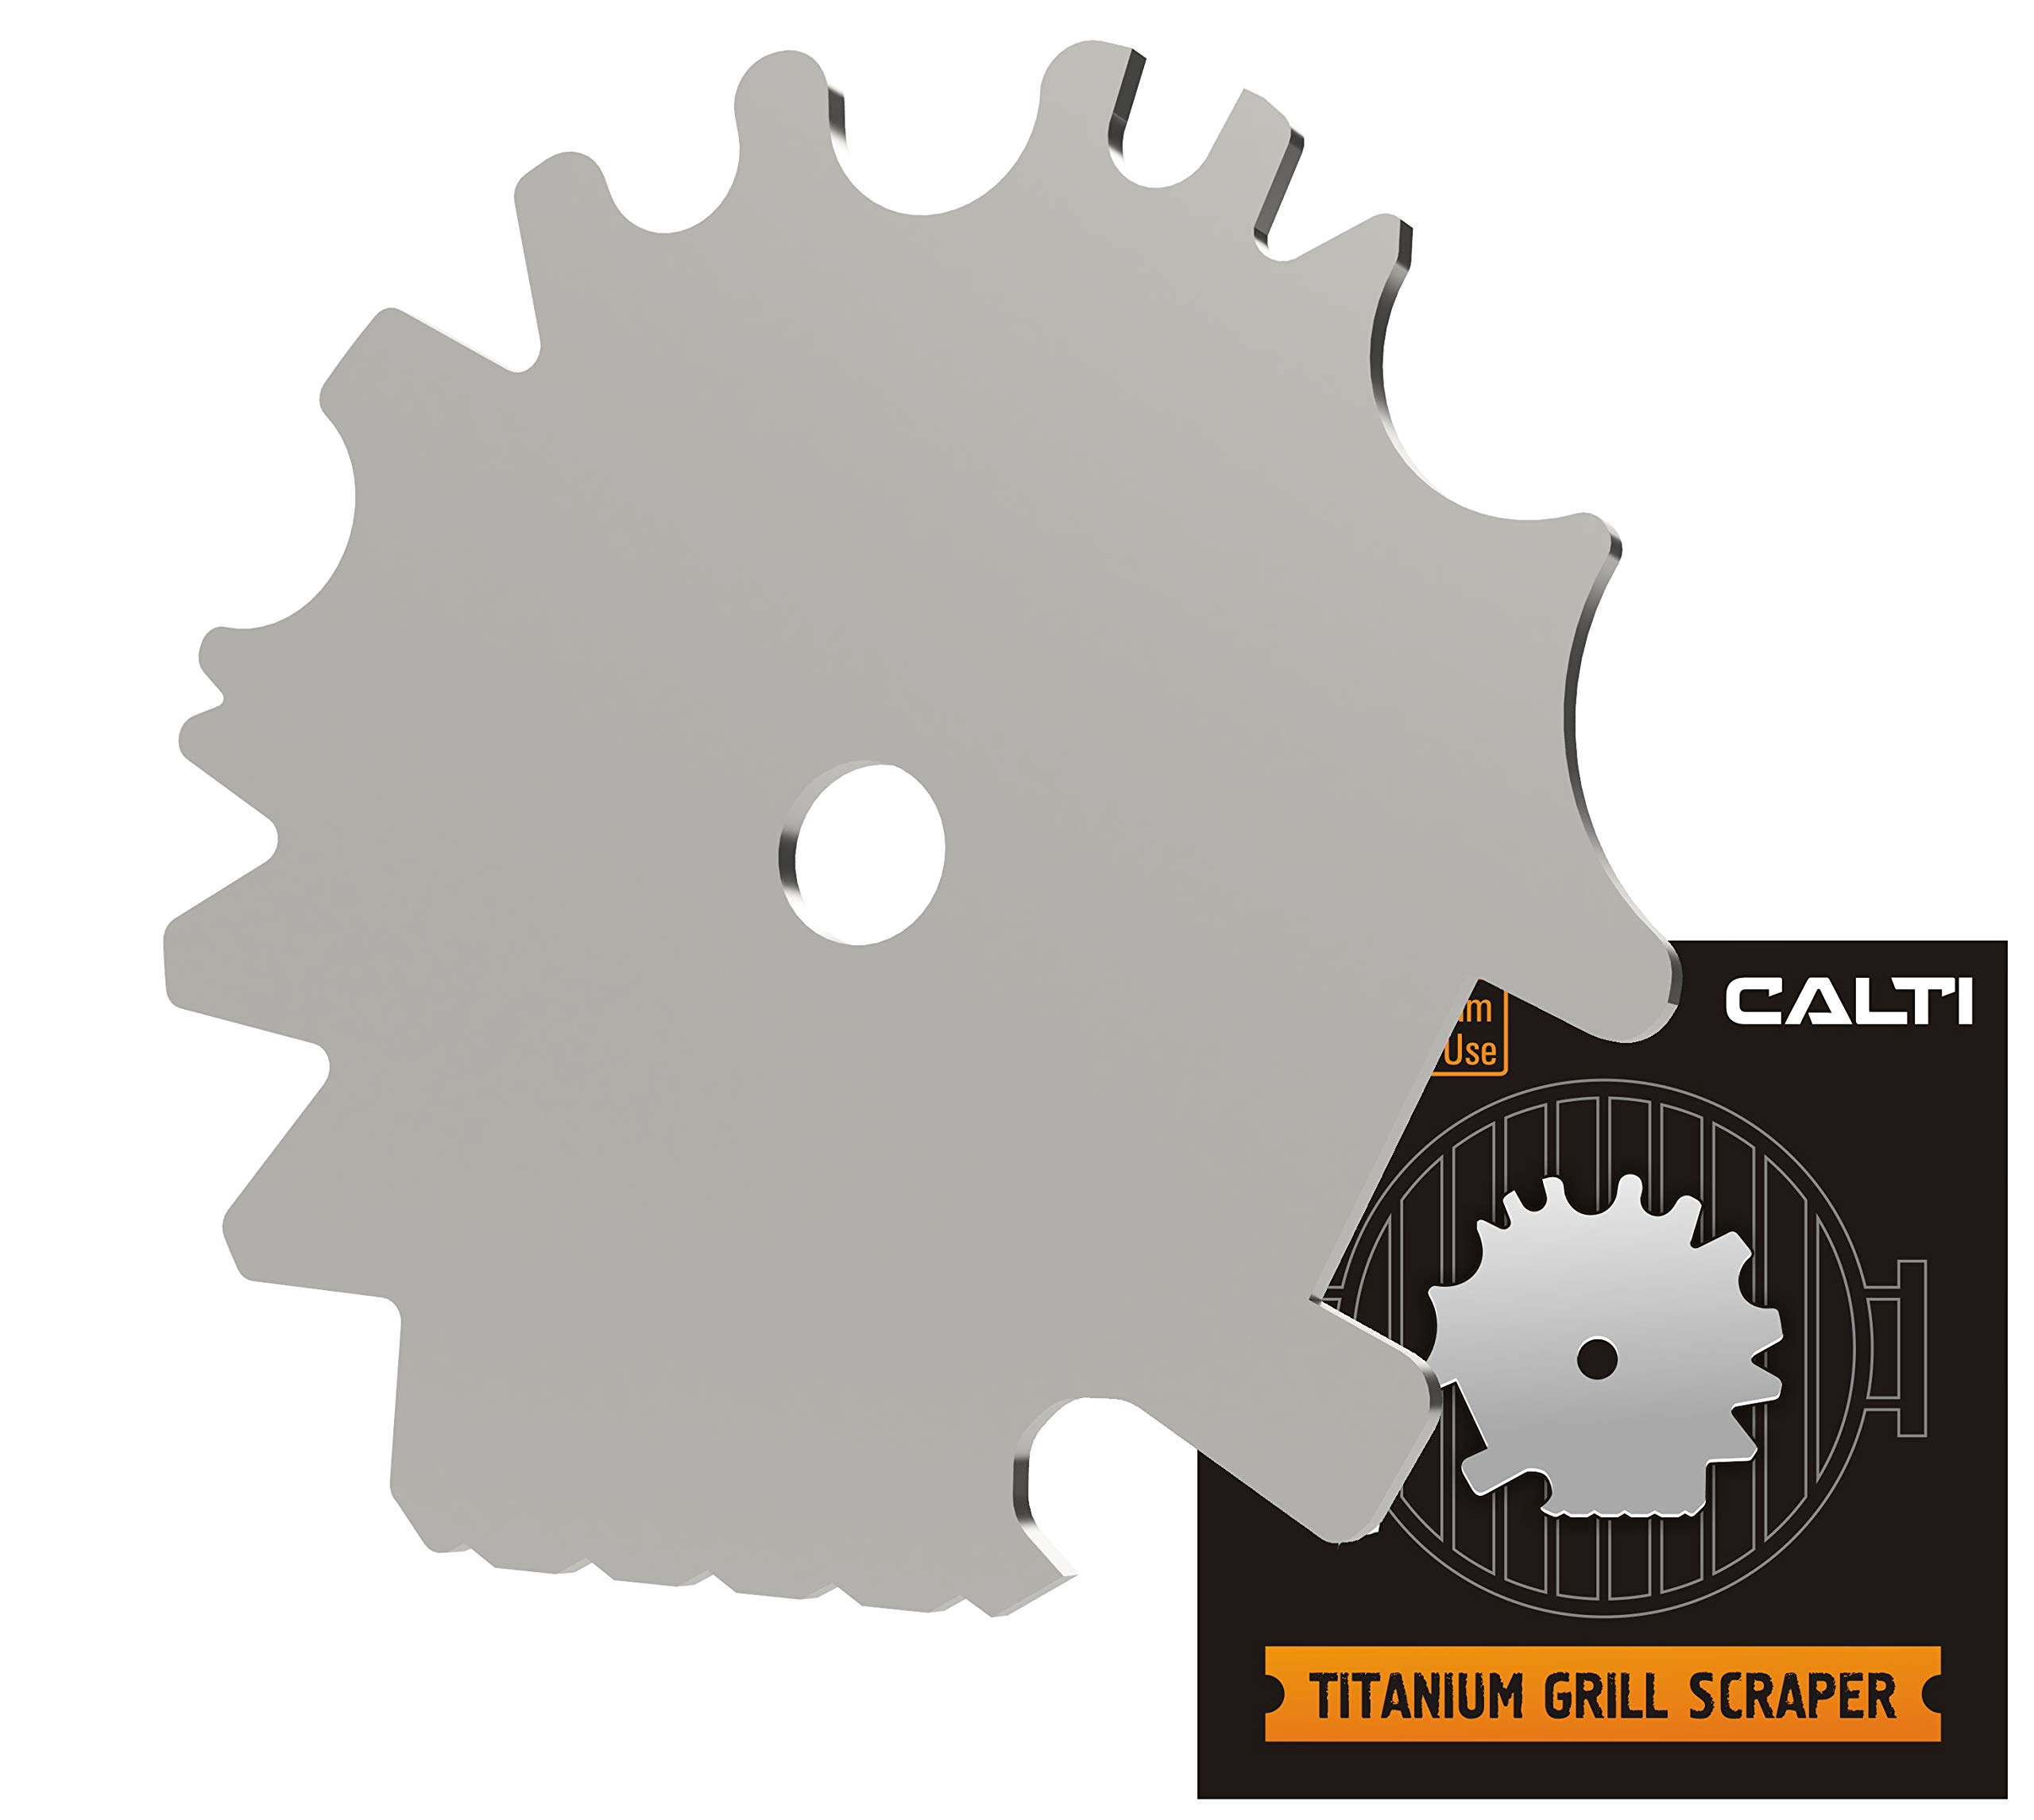 Calti Titanium Grill Scraper for Any Kind of Grill - BBQ Cleaning Tool – The Safest Grill Scrubber for Effective Quick BBQ Grate Grills and Griddle Cleaning - Bottle Opener - Heavy Duty